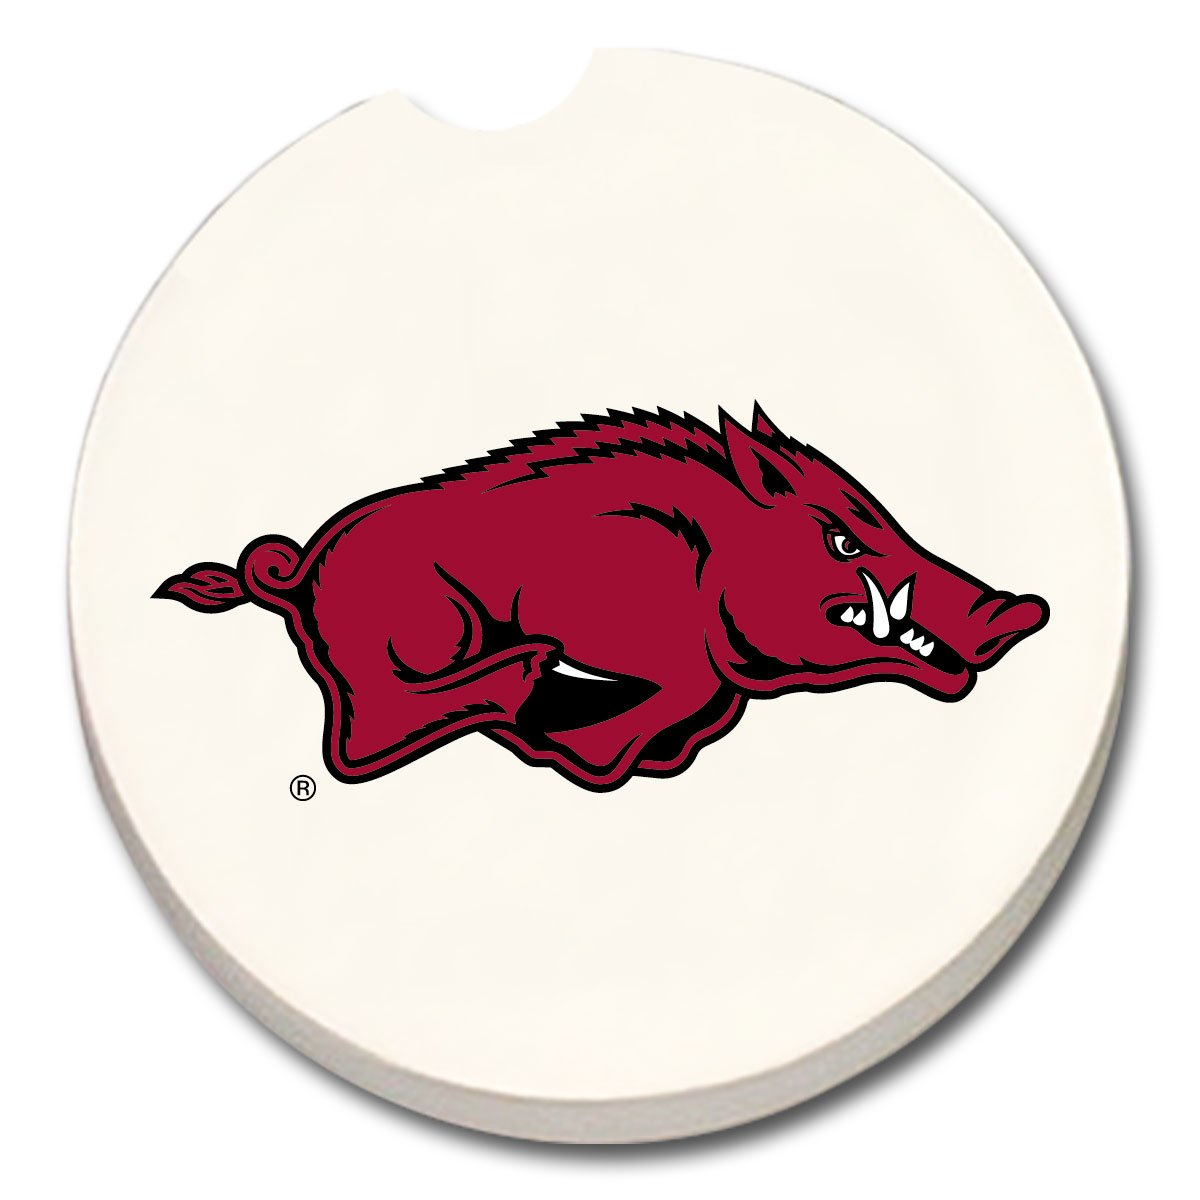 Licensed 12306 NCAA Arkansas Razorbacks Absorbent Car Coaster 1 COUNT CounterArt